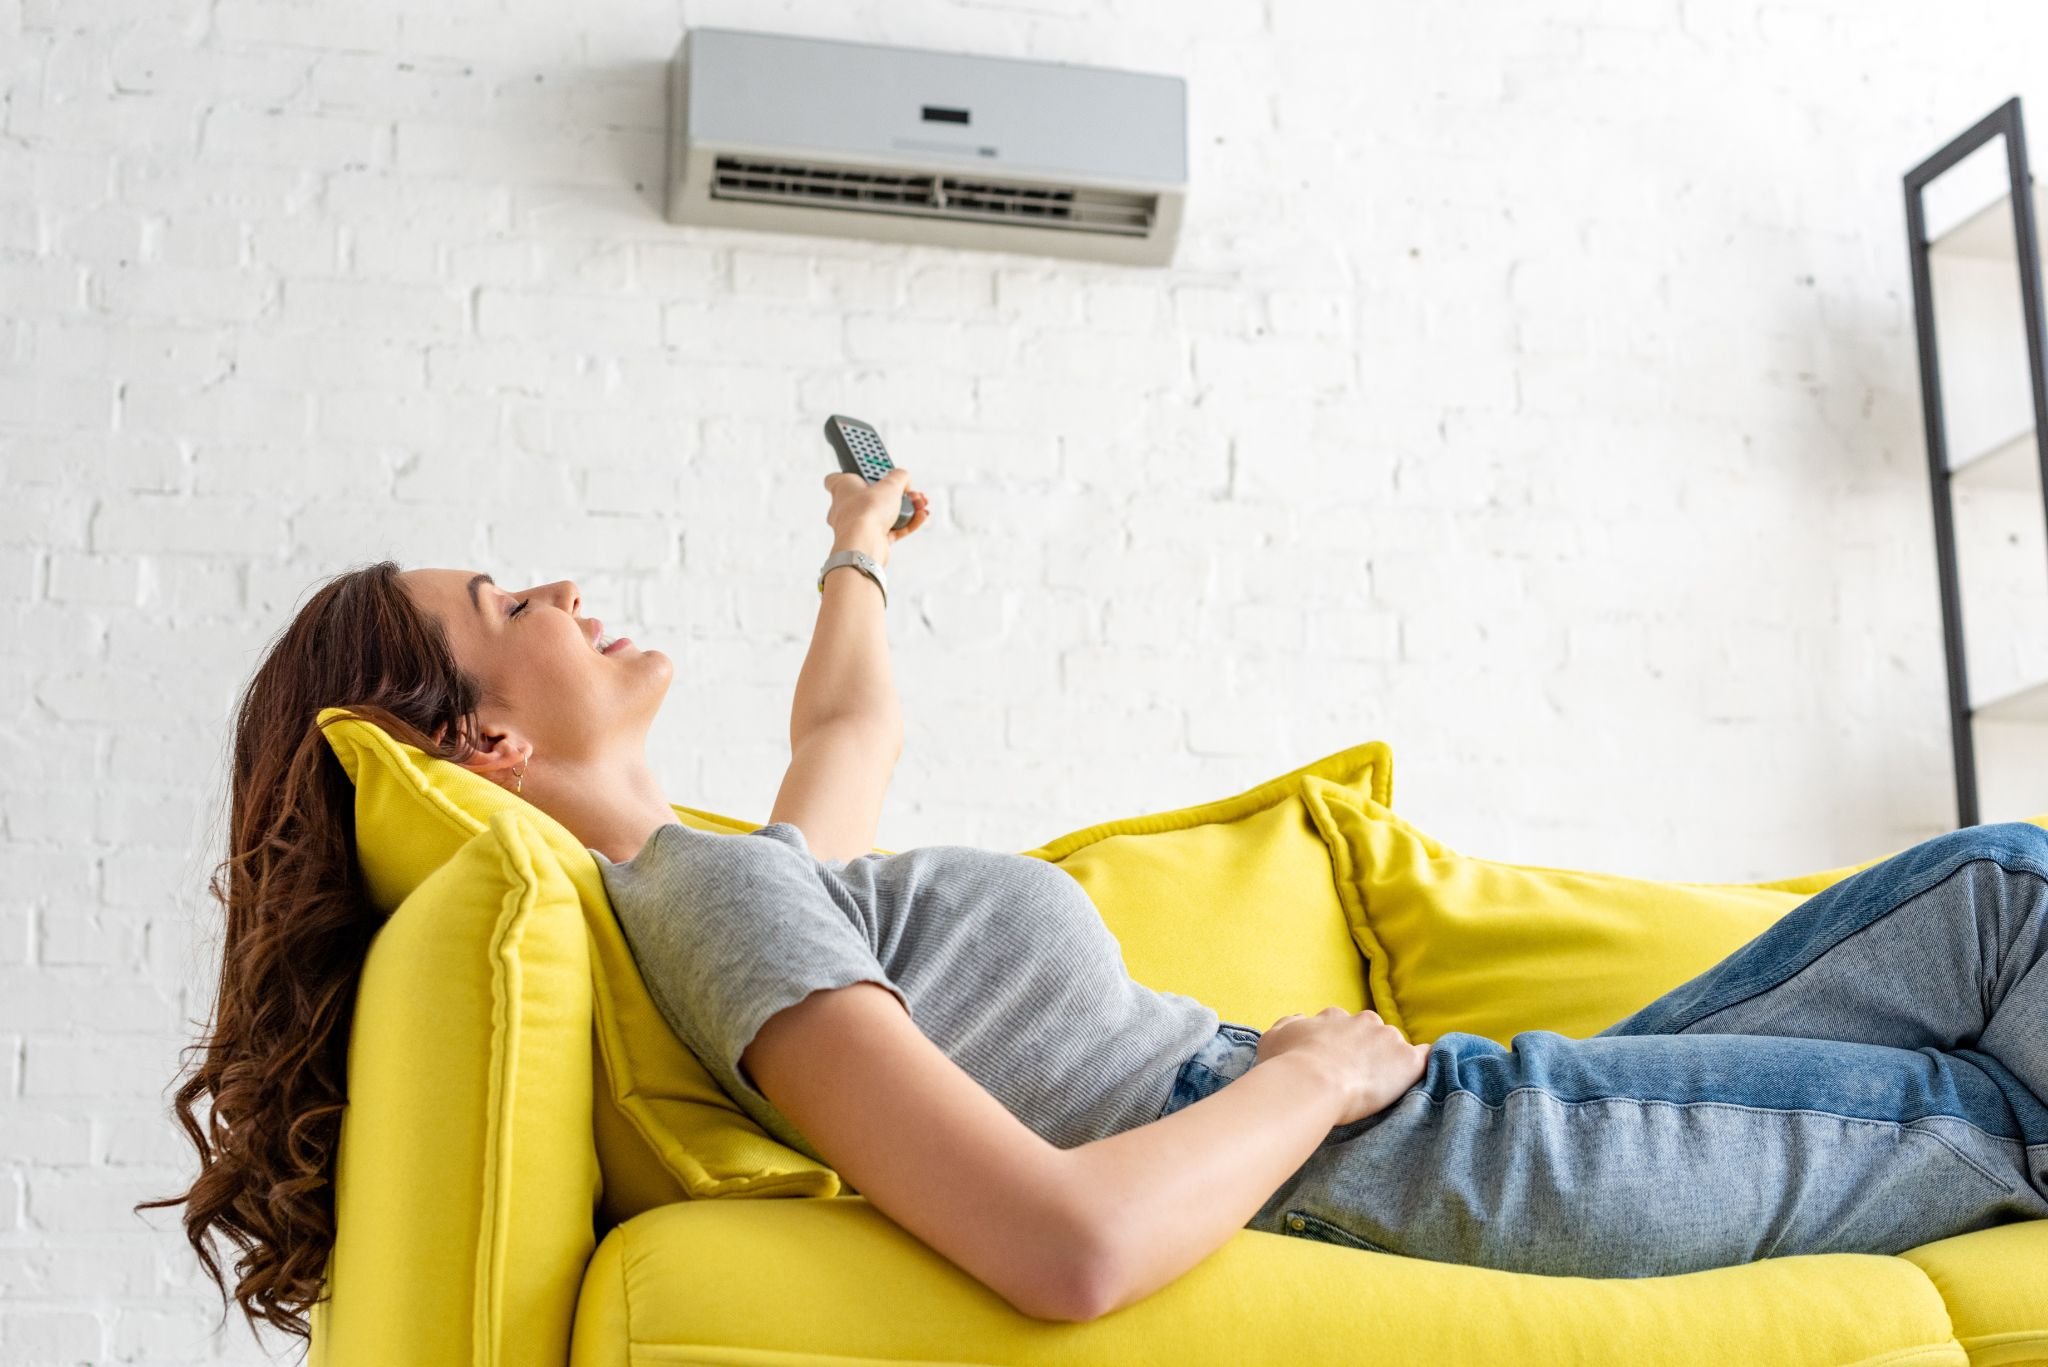 young woman relaxing under air conditioner and holding remote control